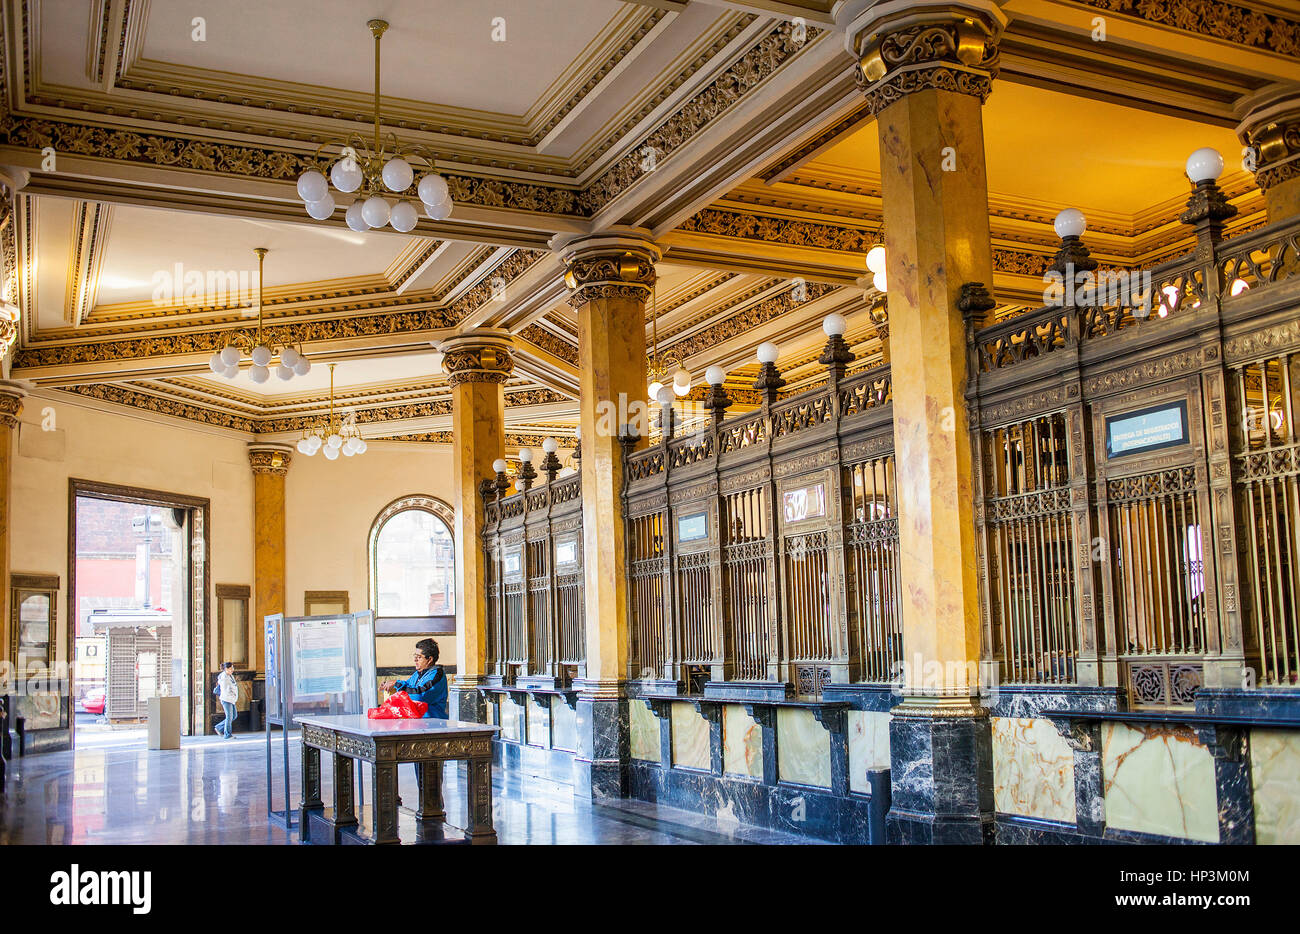 The Post Office Palace, Palacio de Correos, is one the most brilliant examples of the eclectic architecture of the Stock Photo